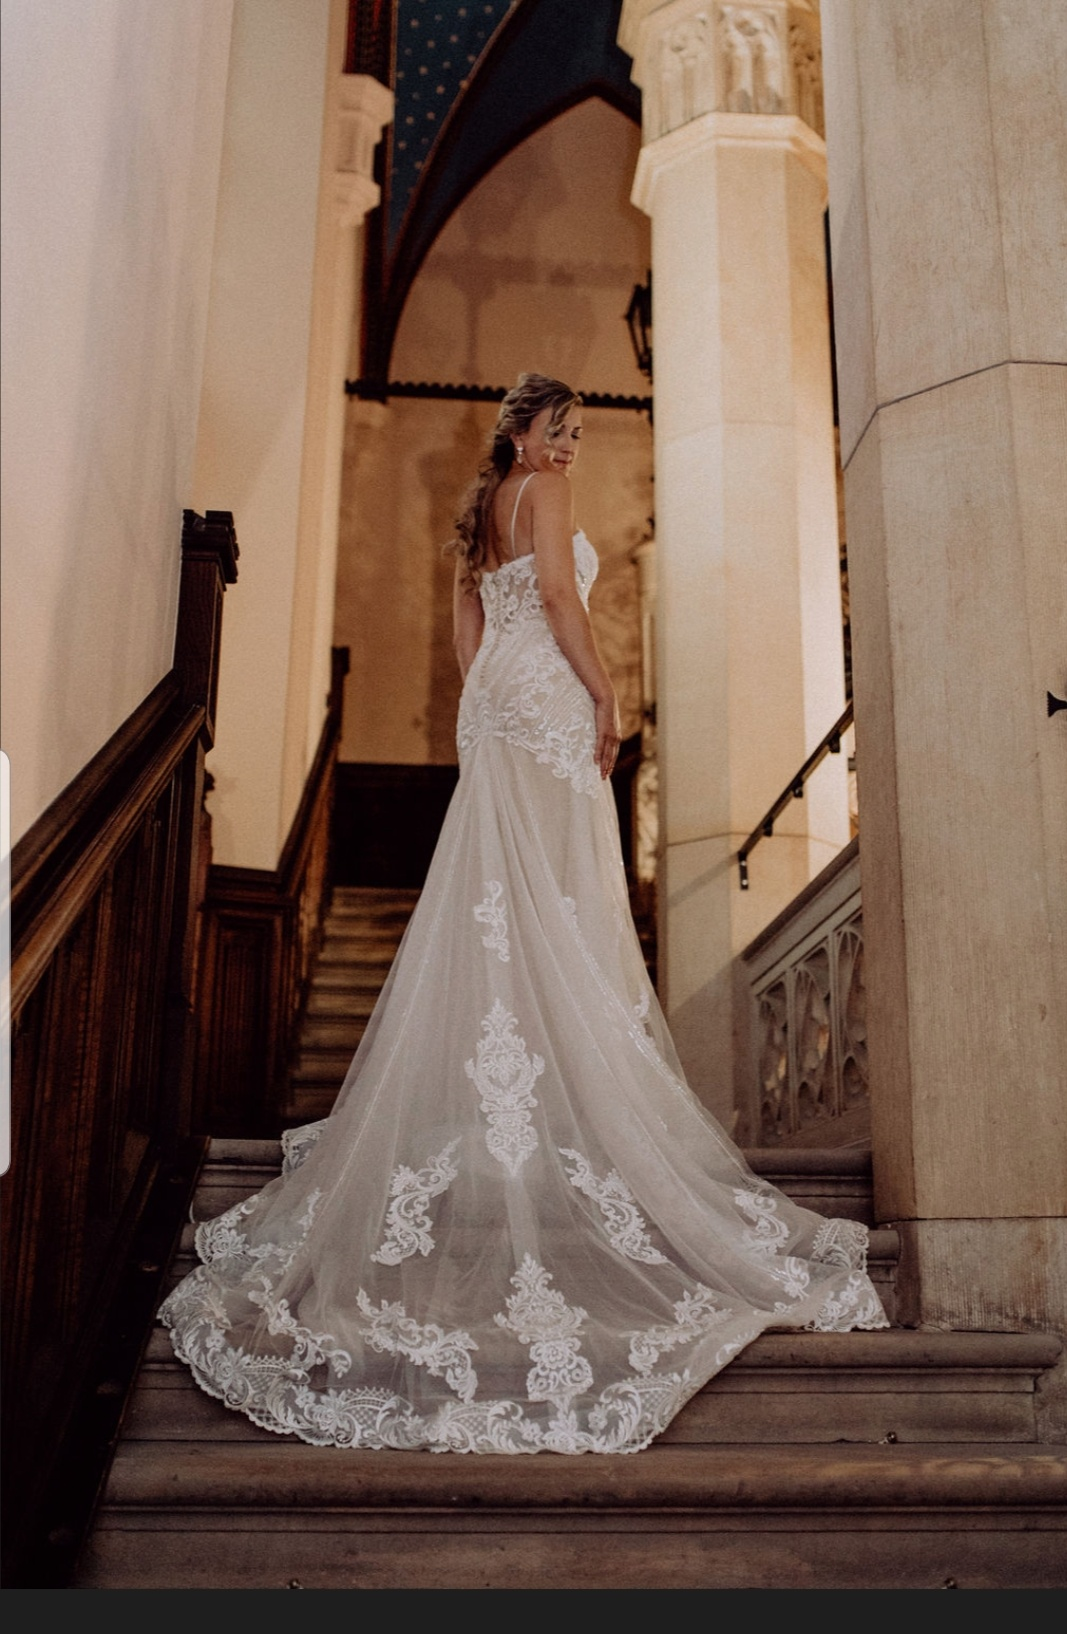 True Bride Alison walking up the stairs at the Marienburg Castle in Germany, wearing her Essense of Australia wedding dress, style D2819